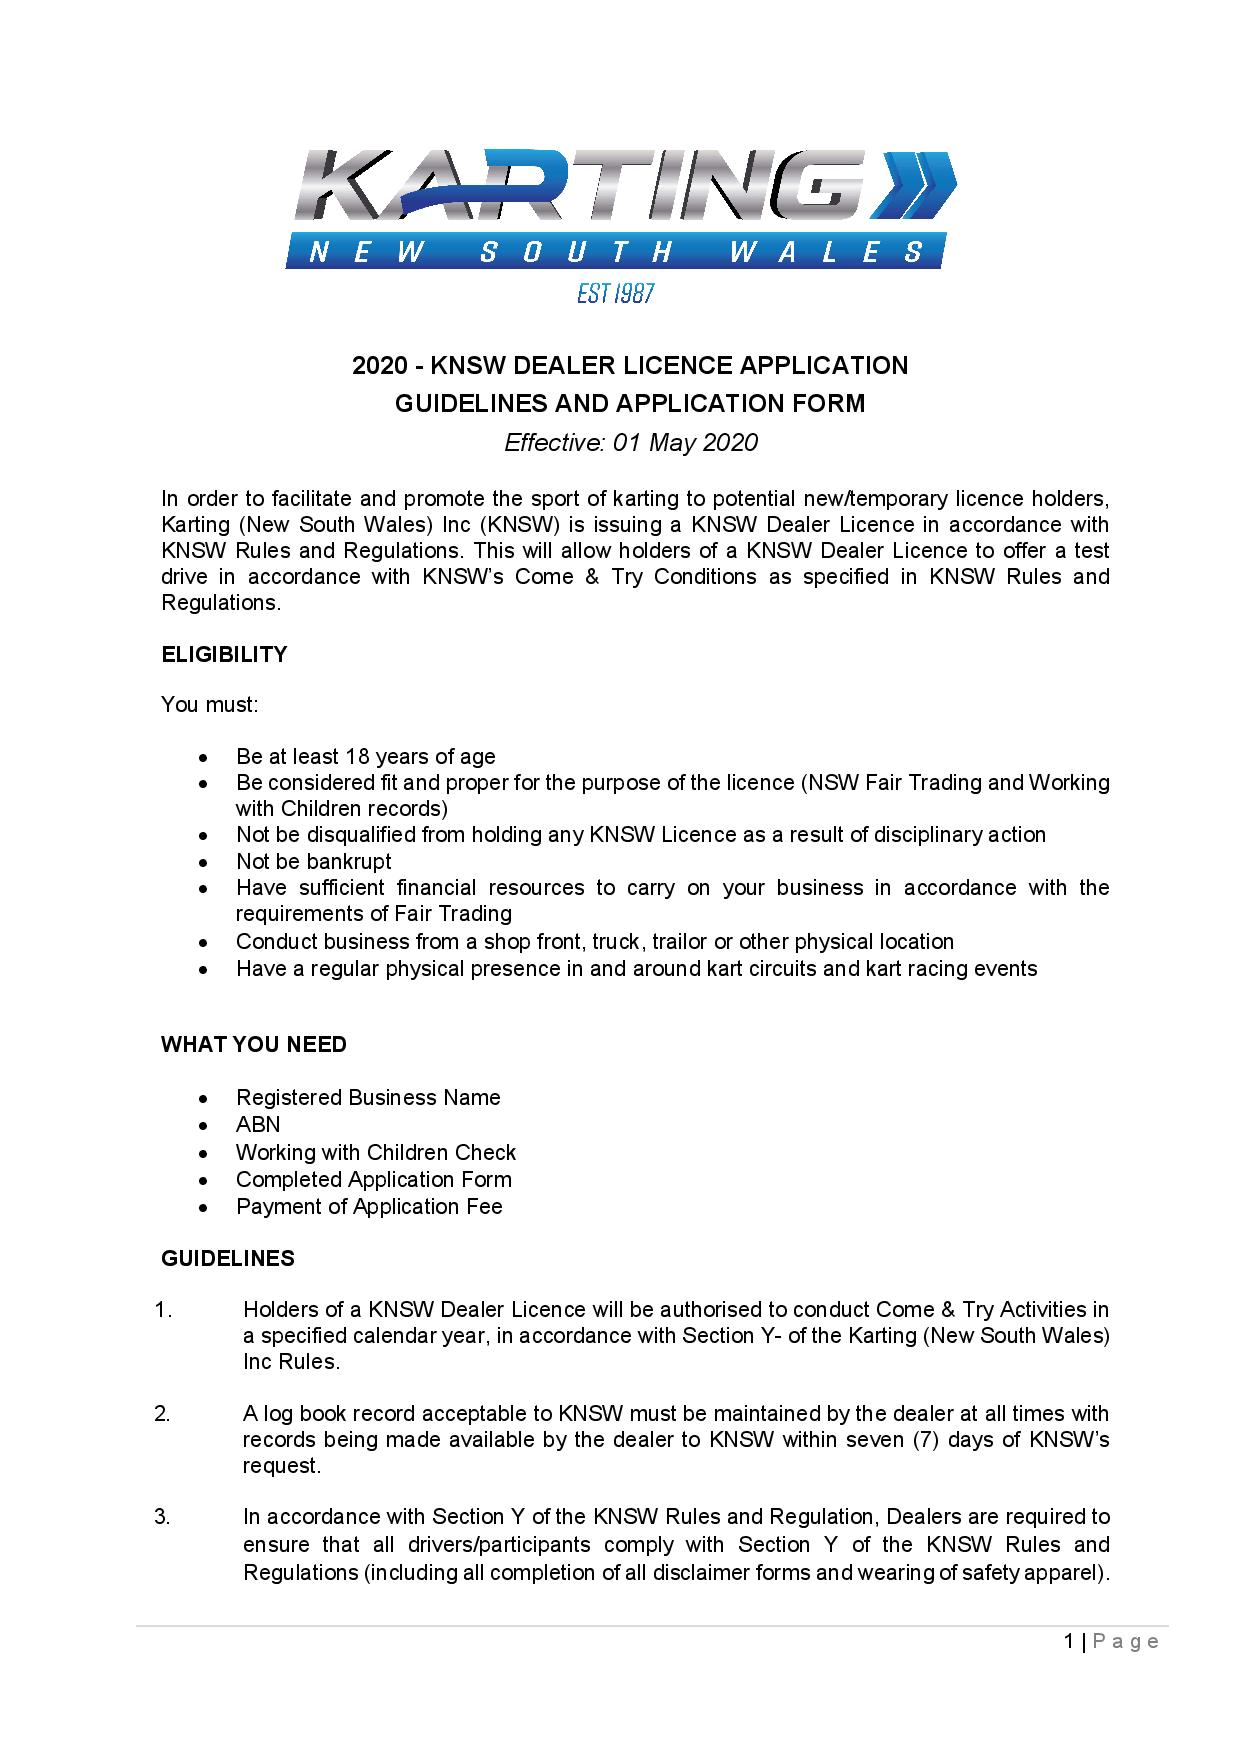 KNSW Accredited Dealer Guidelines & Application Form